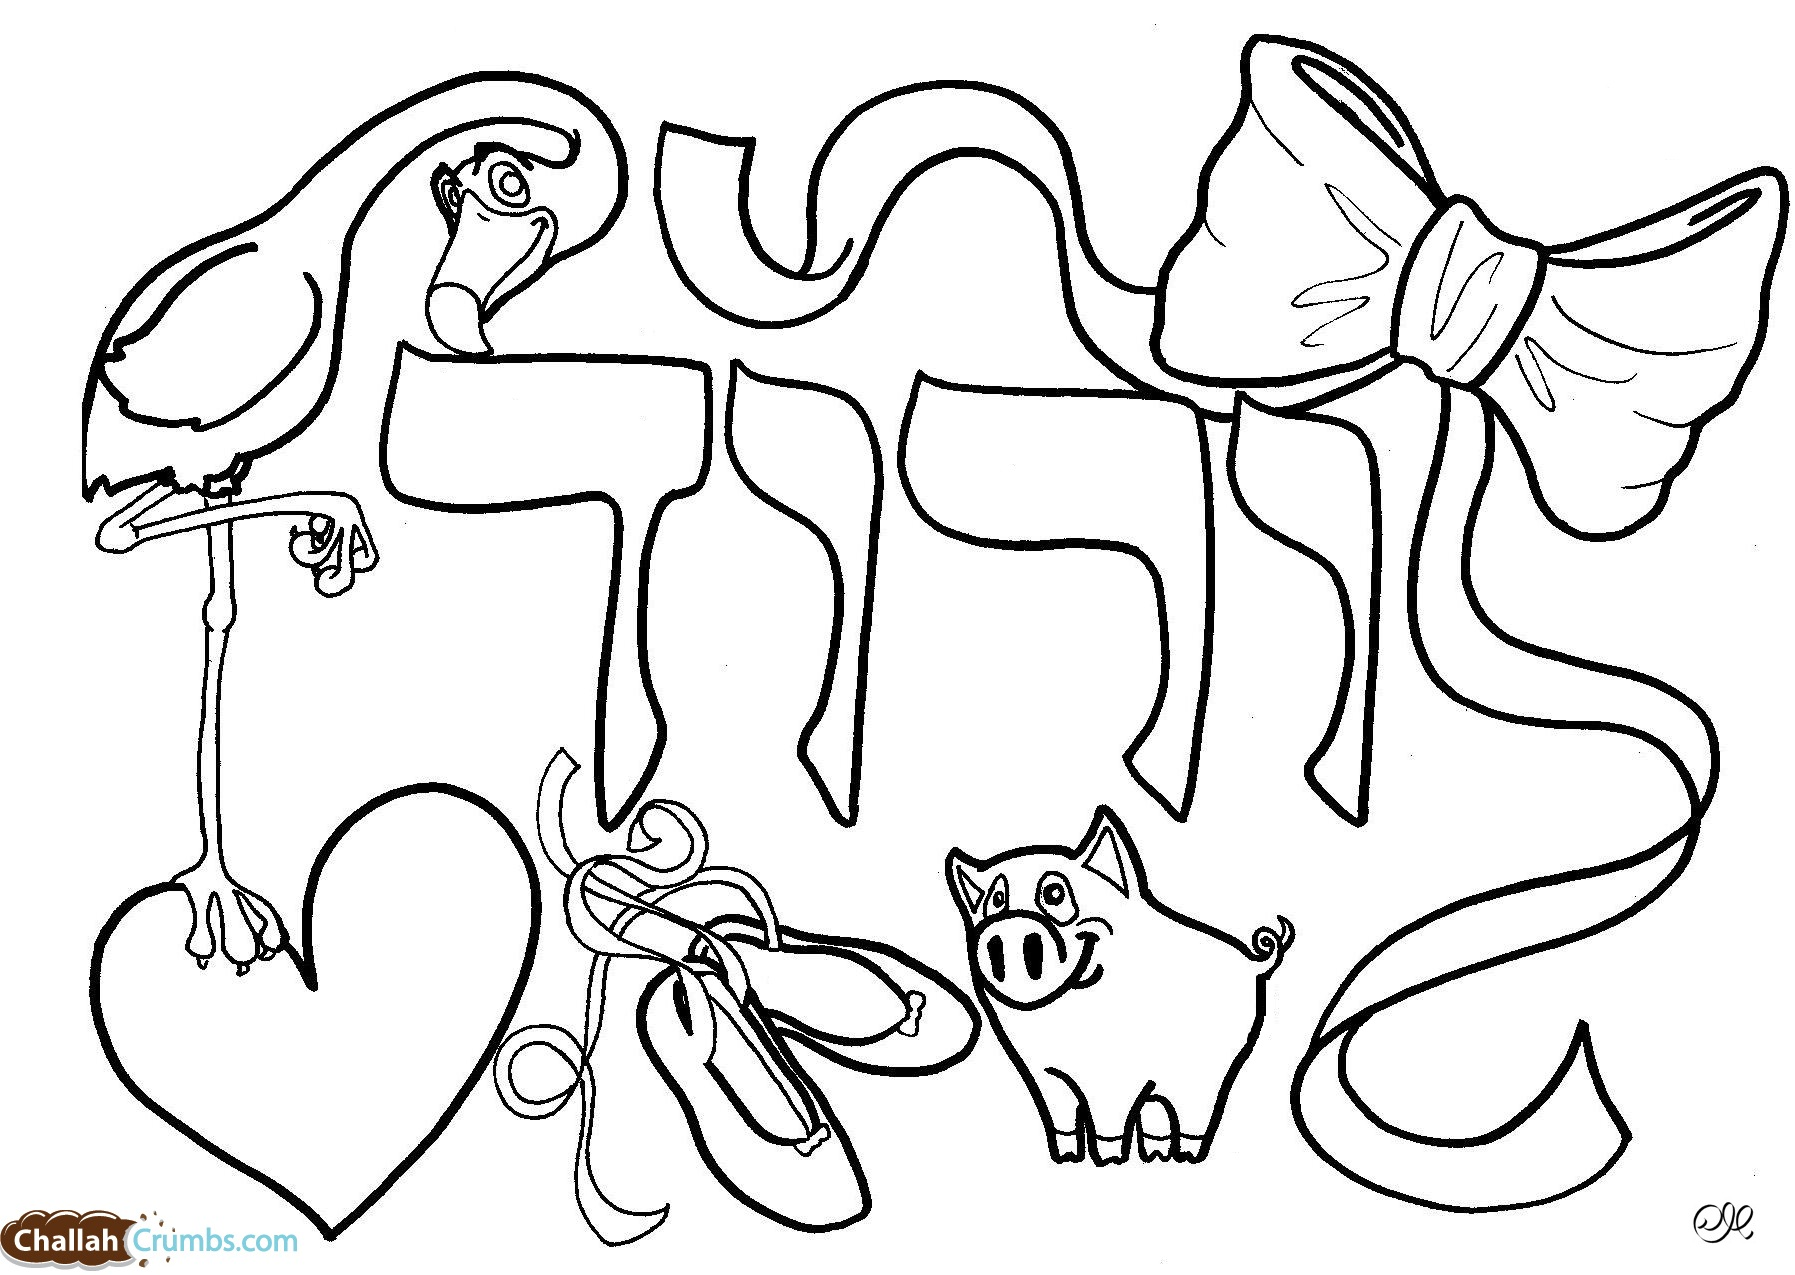 challah coloring pages - photo#7